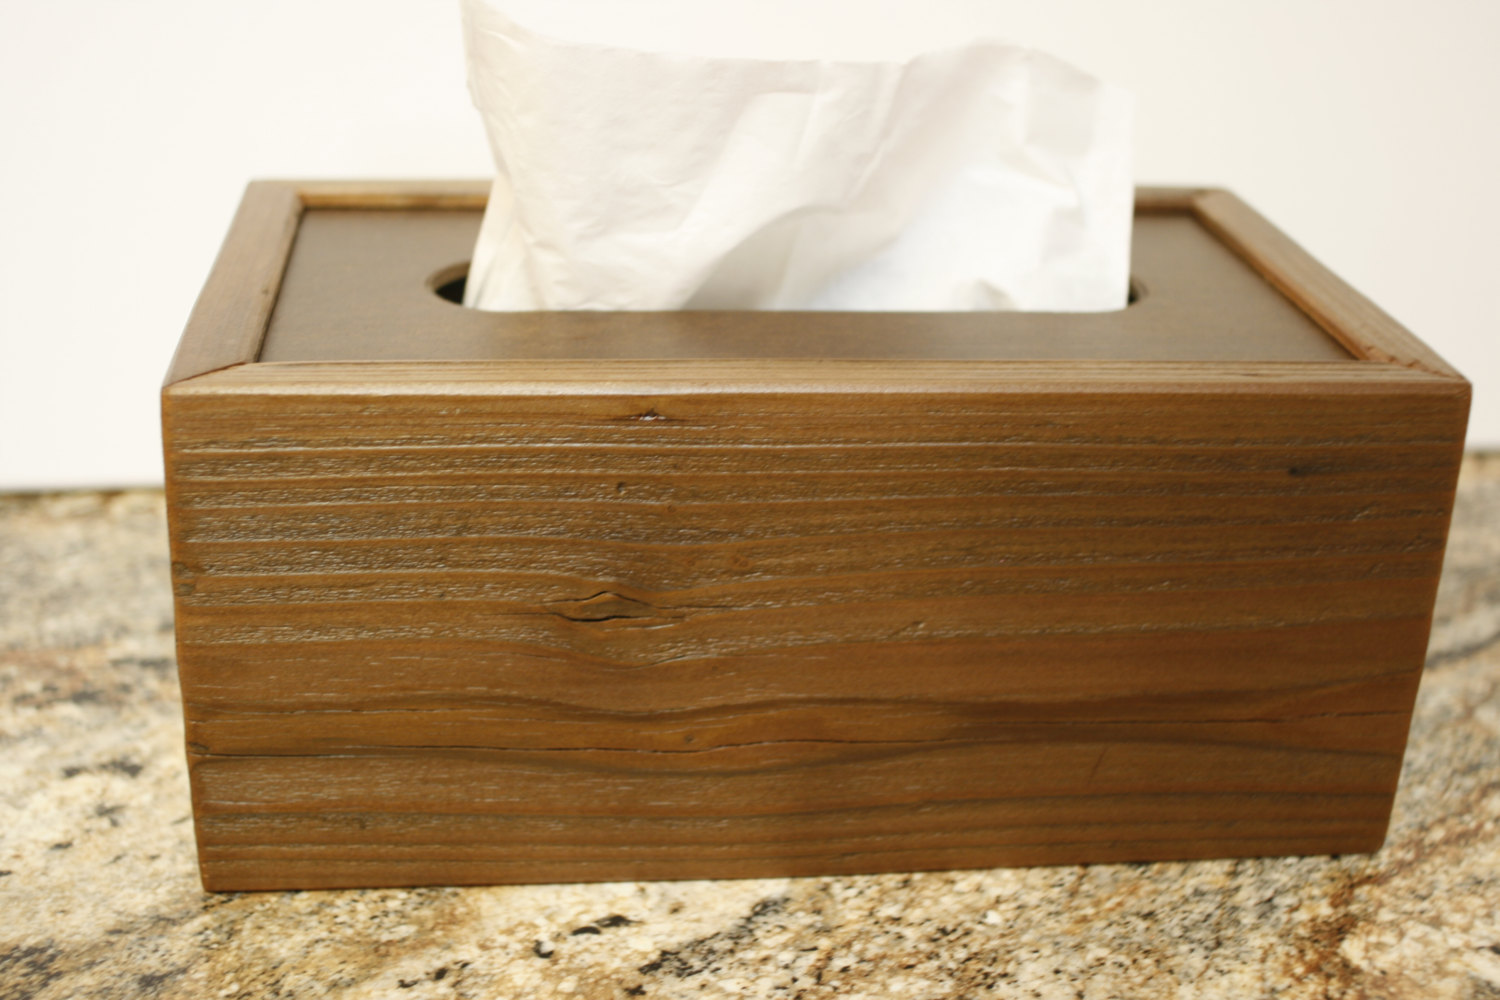 Rectangle Tissue Box Cover Made Of Hardwood Material